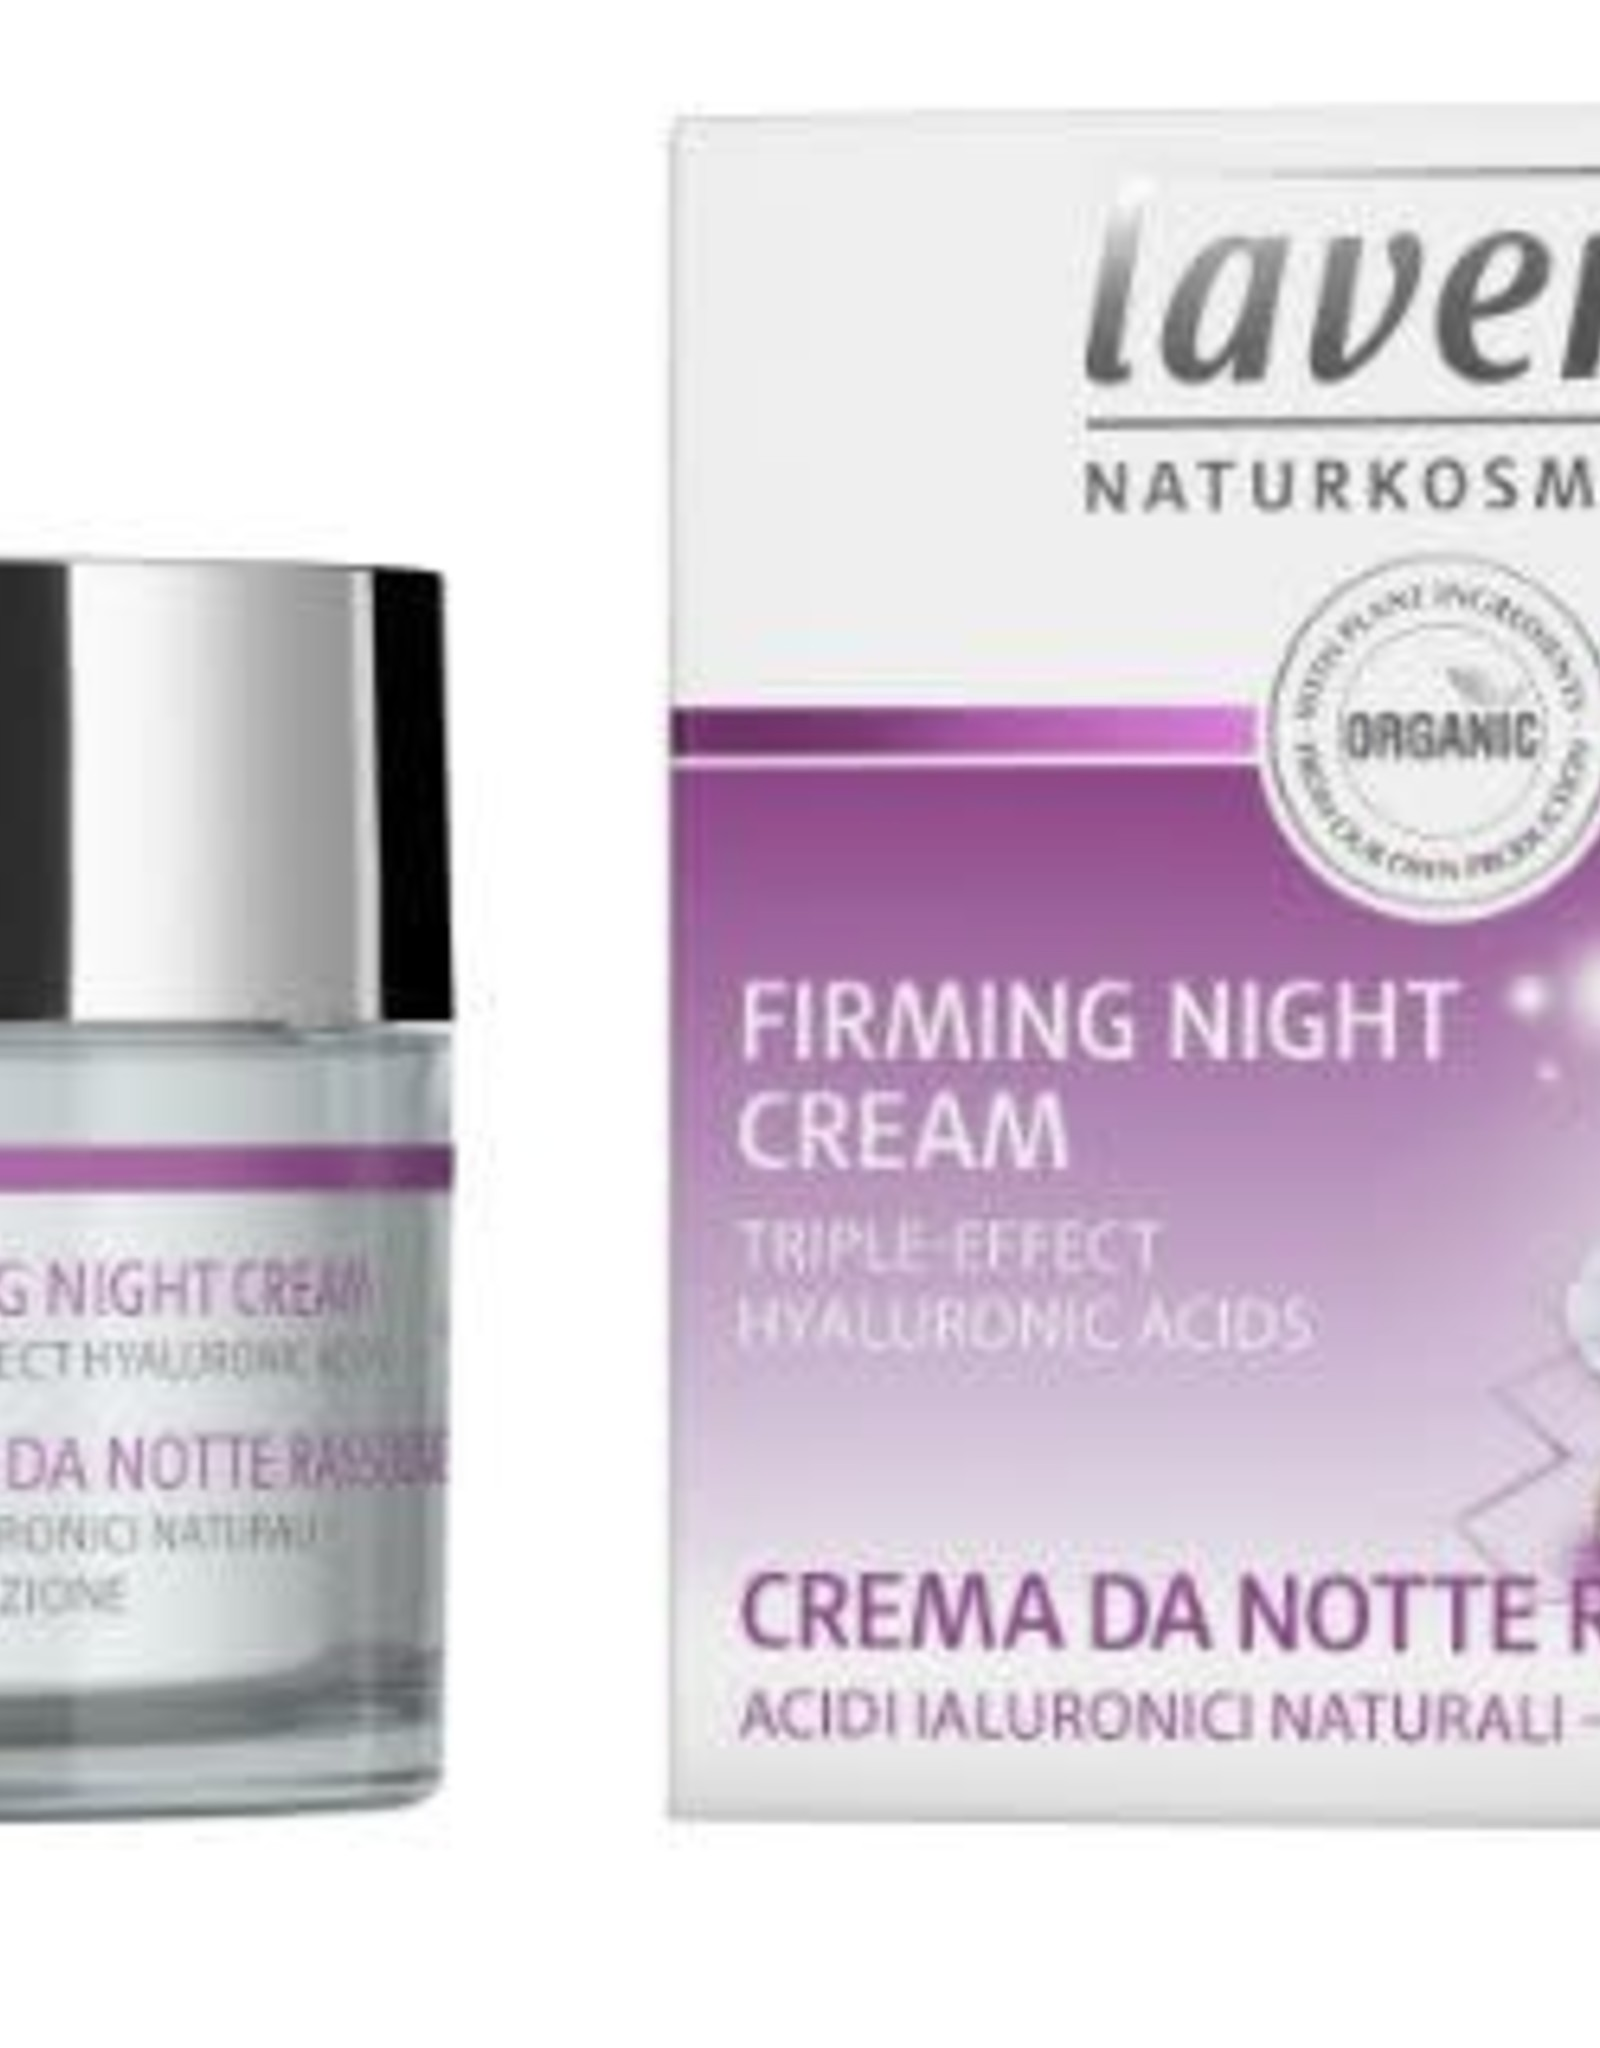 Lavera Nachtcreme/night cream firming karanja 50 ml